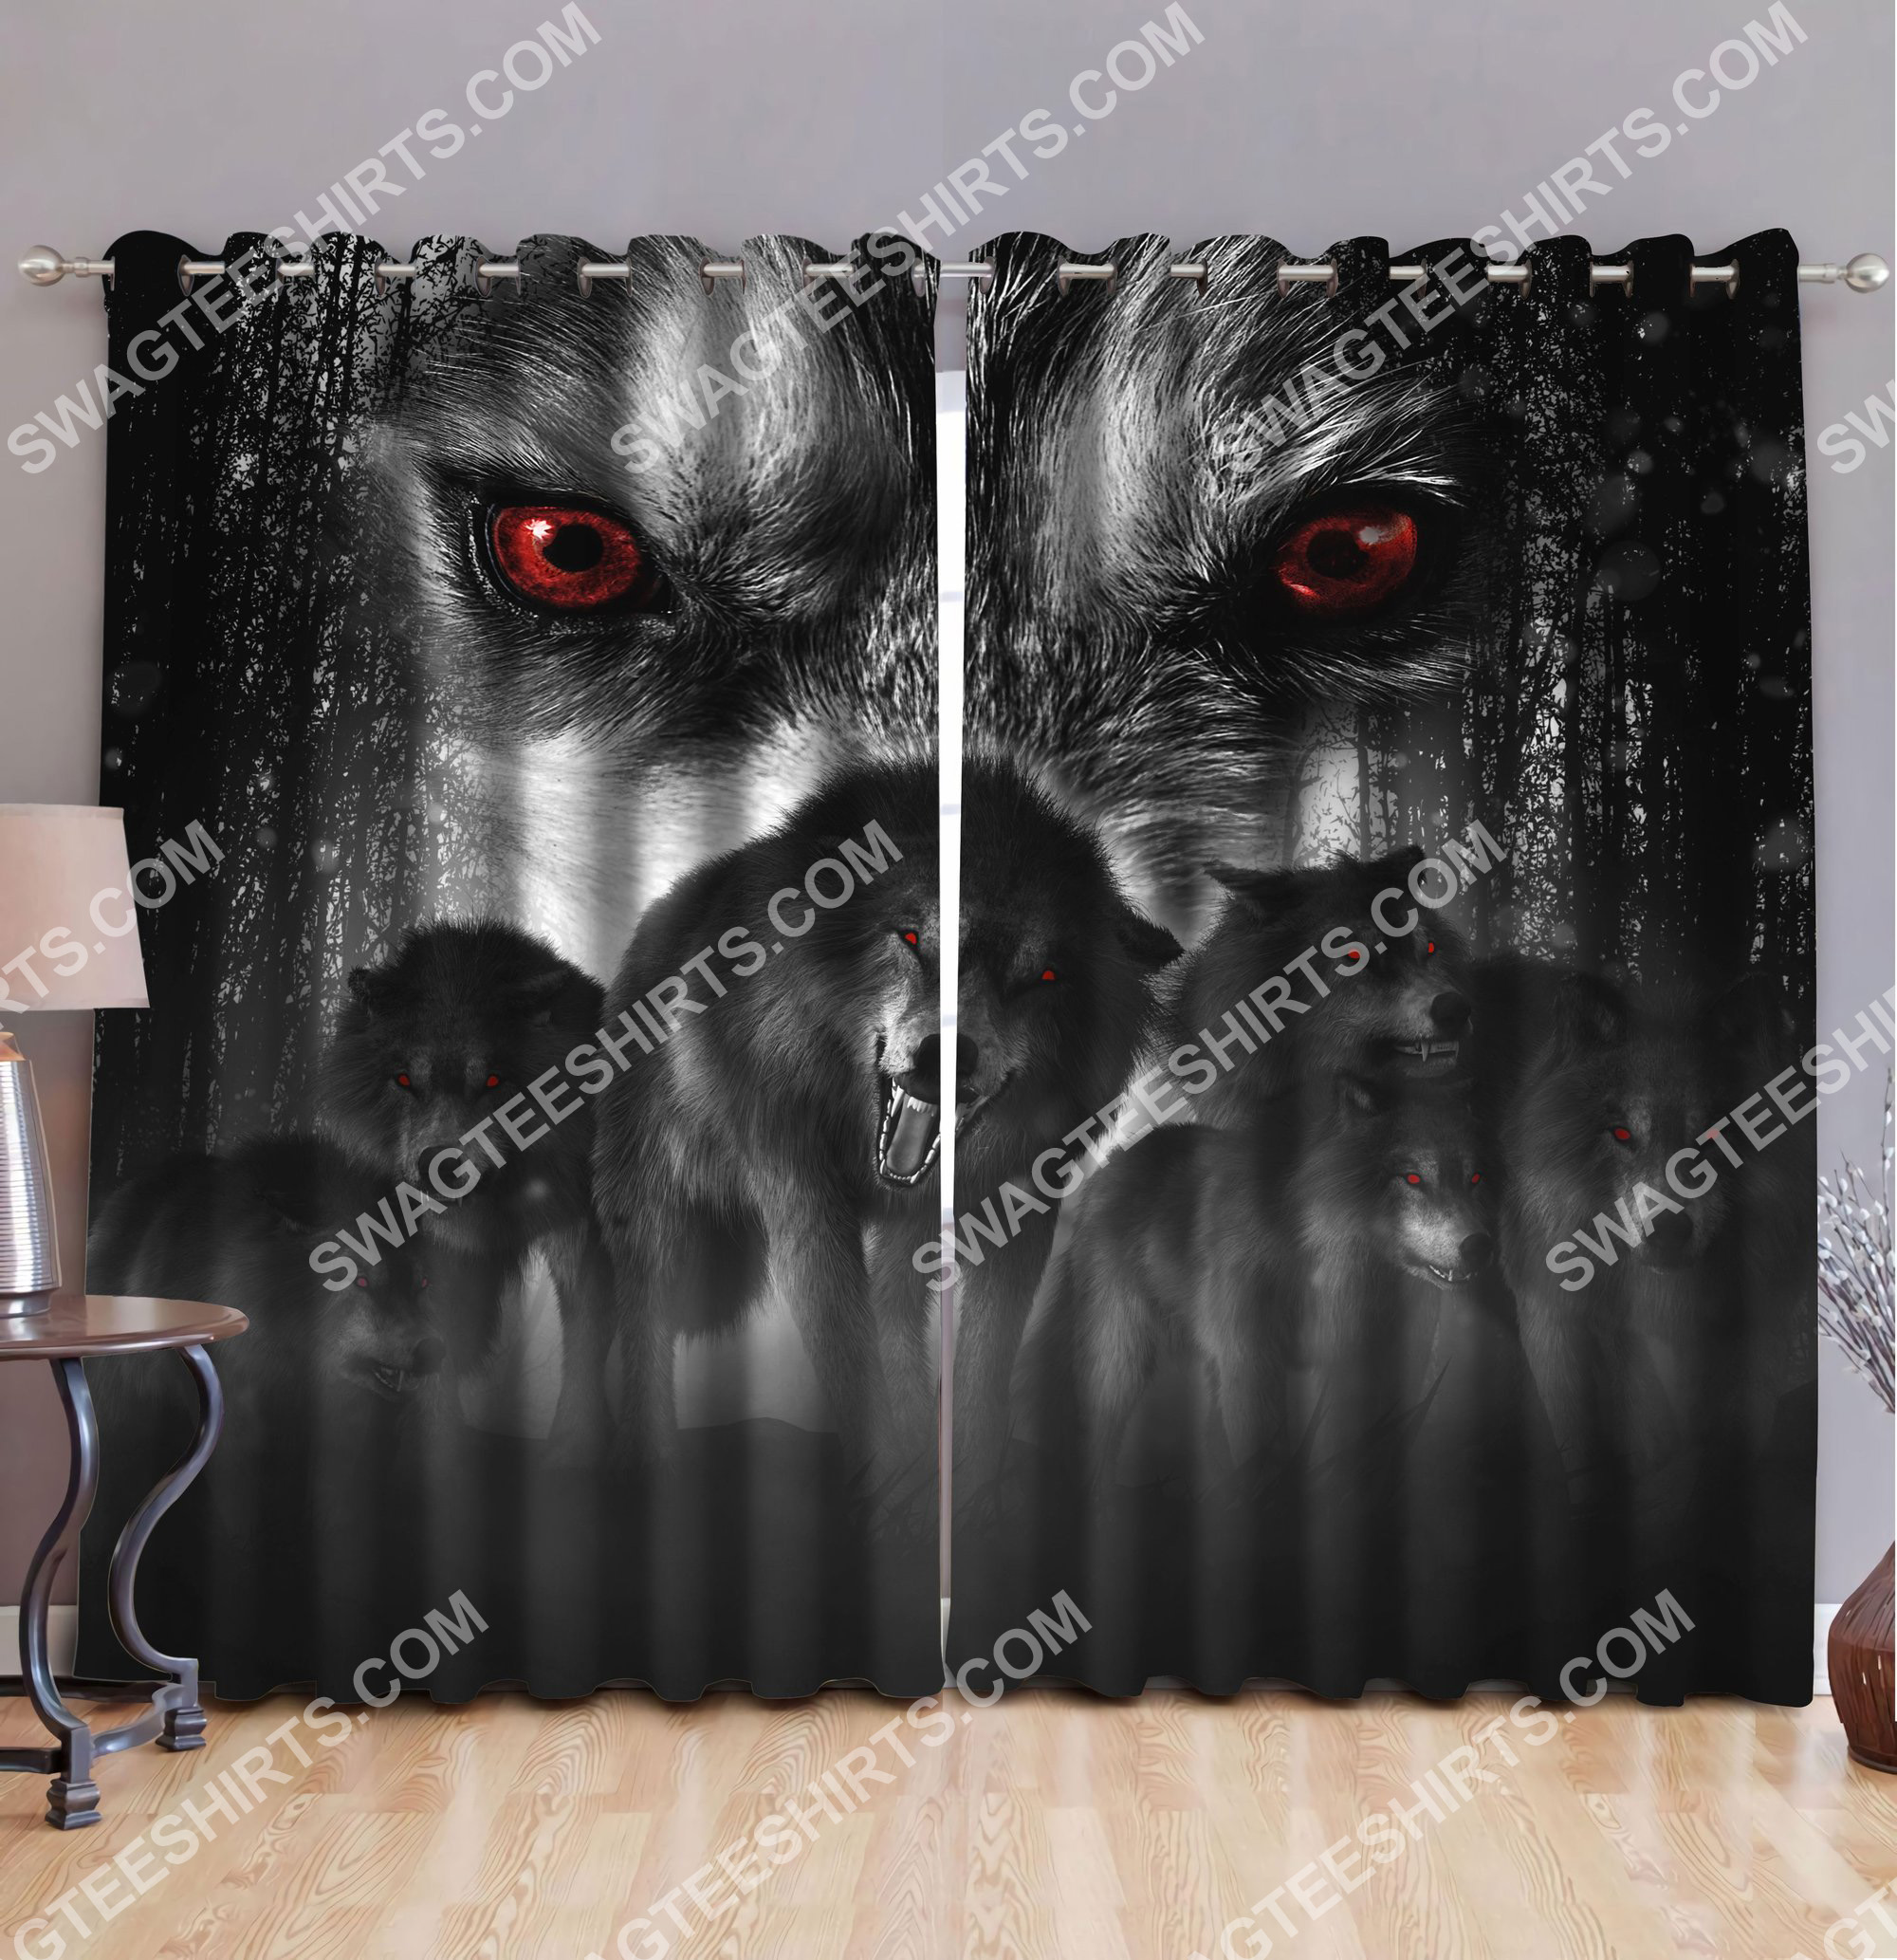 [Top-selling] wolf with red eyes all over printed window curtains - maria